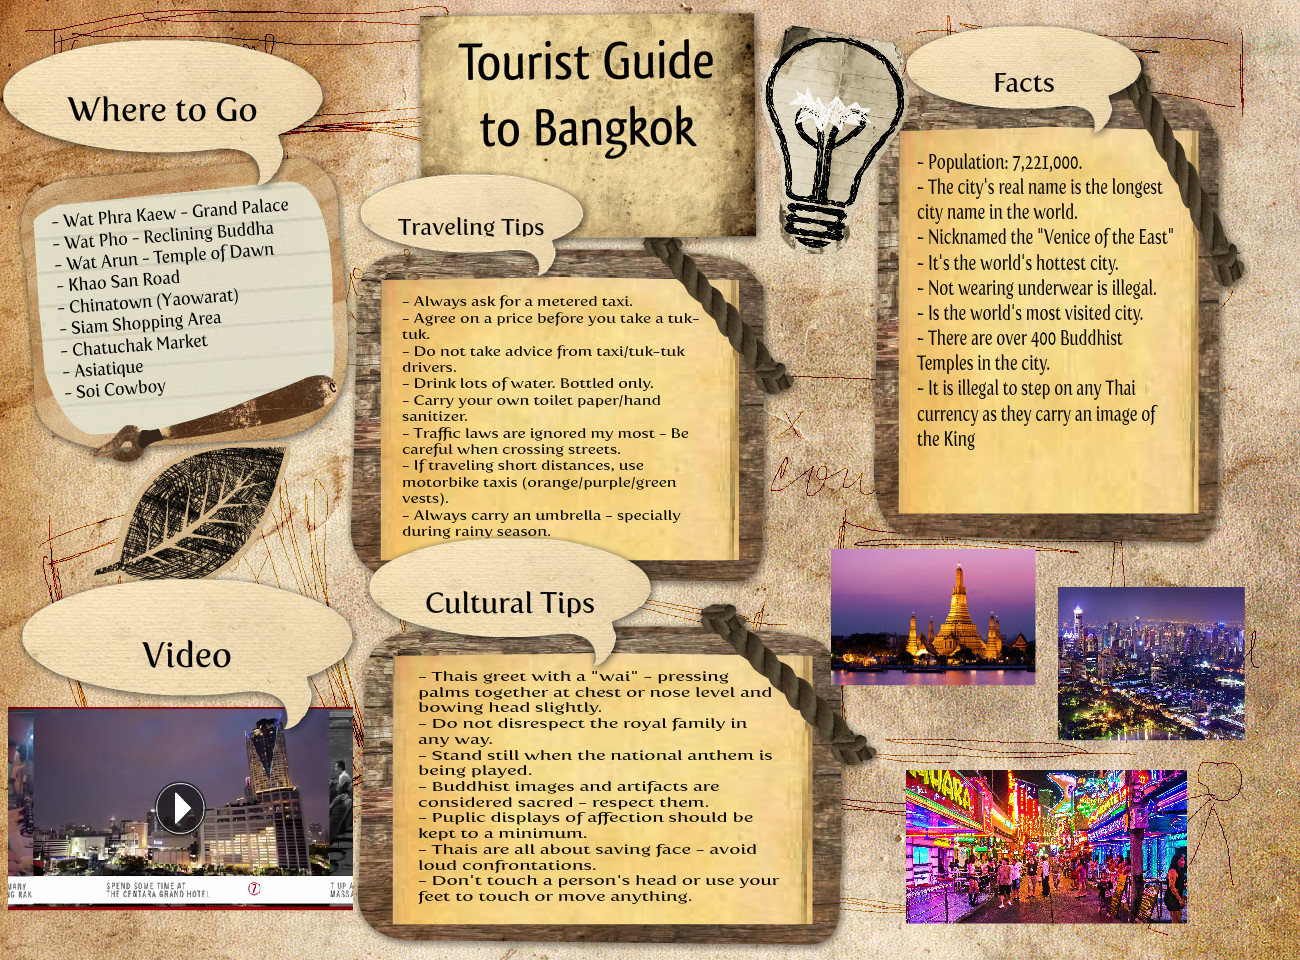 Tourist Guide to Bangkok